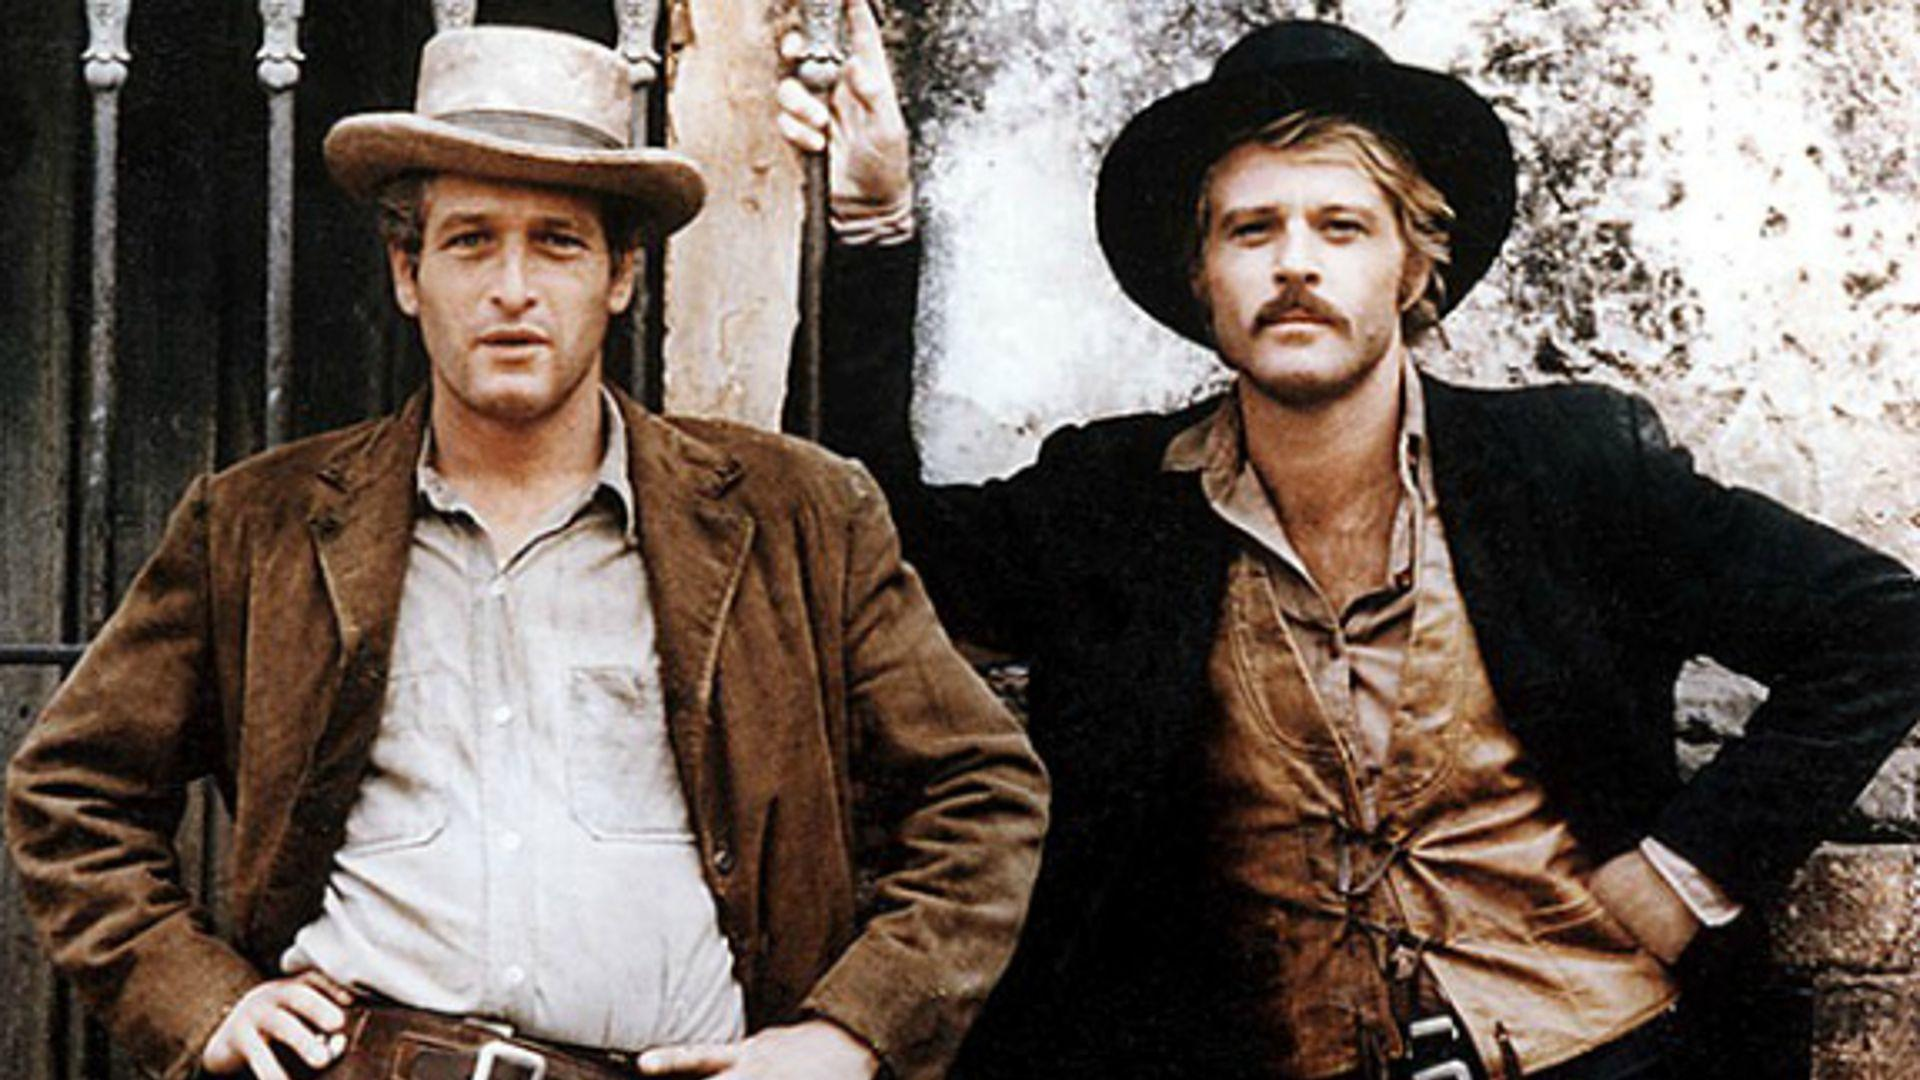 Nevada City Film Festival presents Butch Cassidy & The Sundance Kid ...